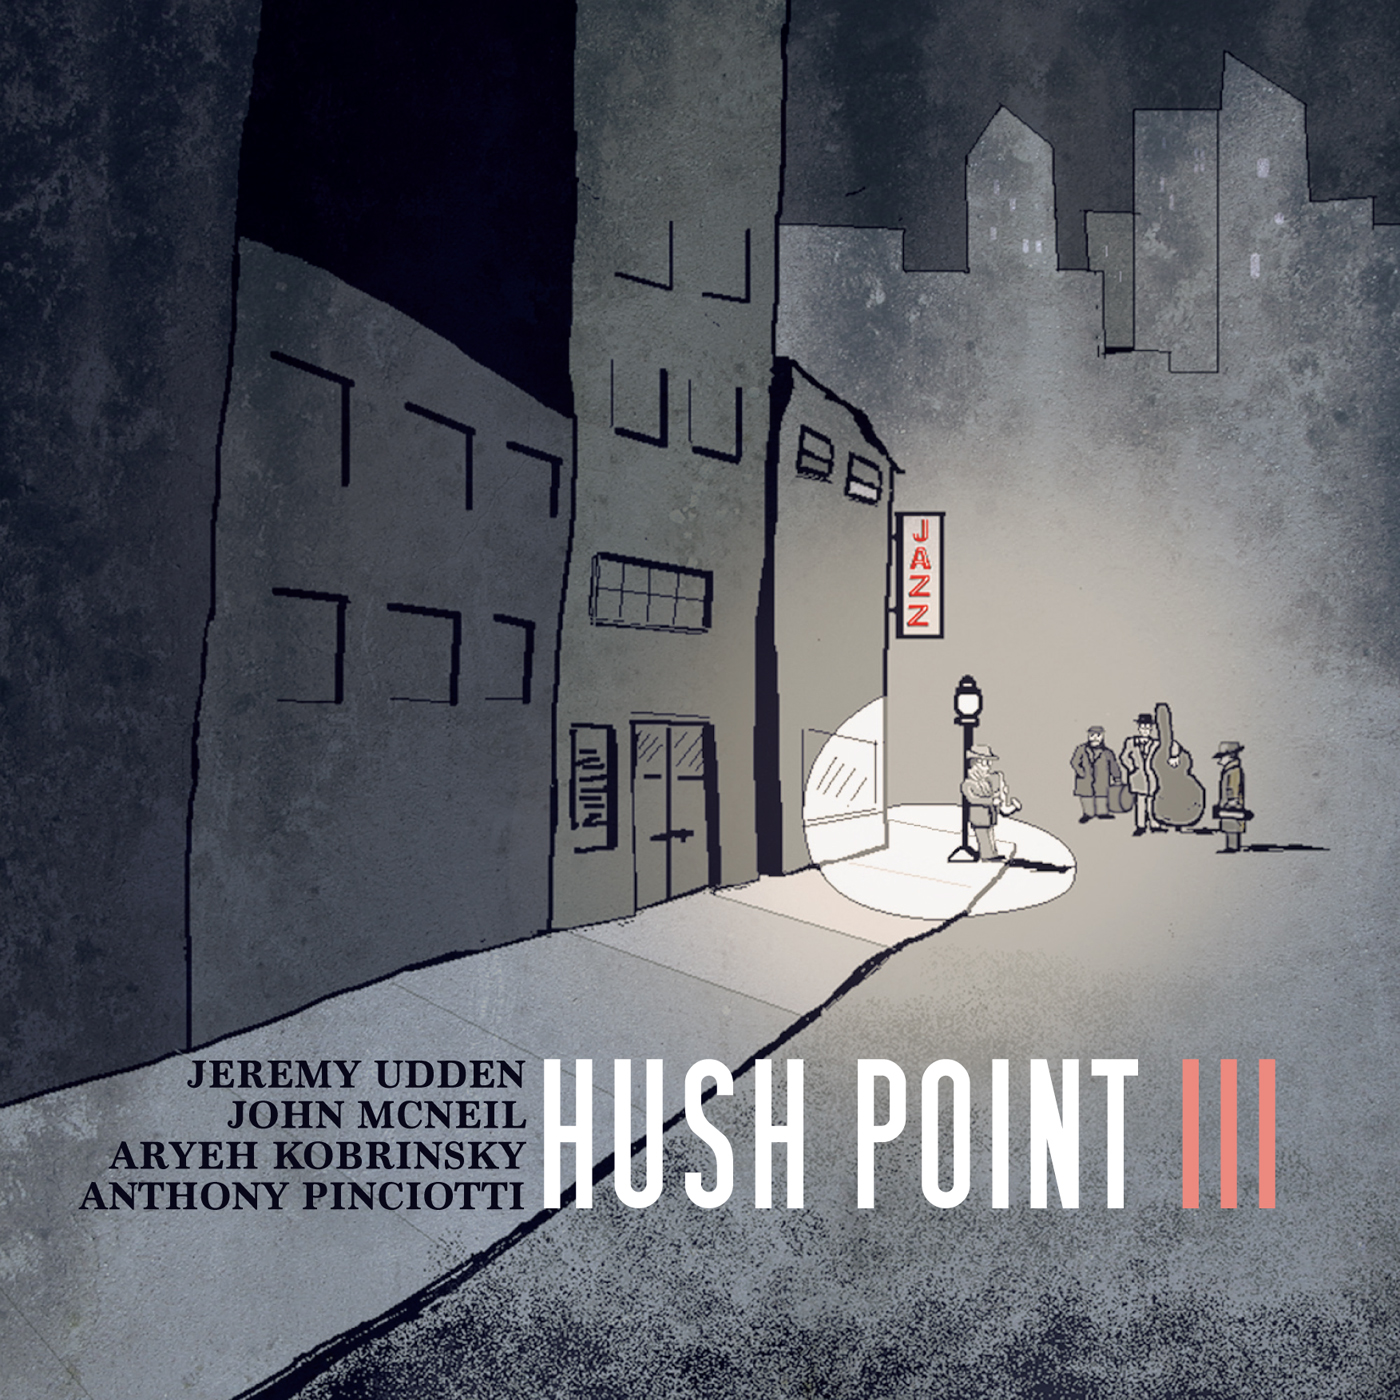 Hush Point III  by   Hush Point cover